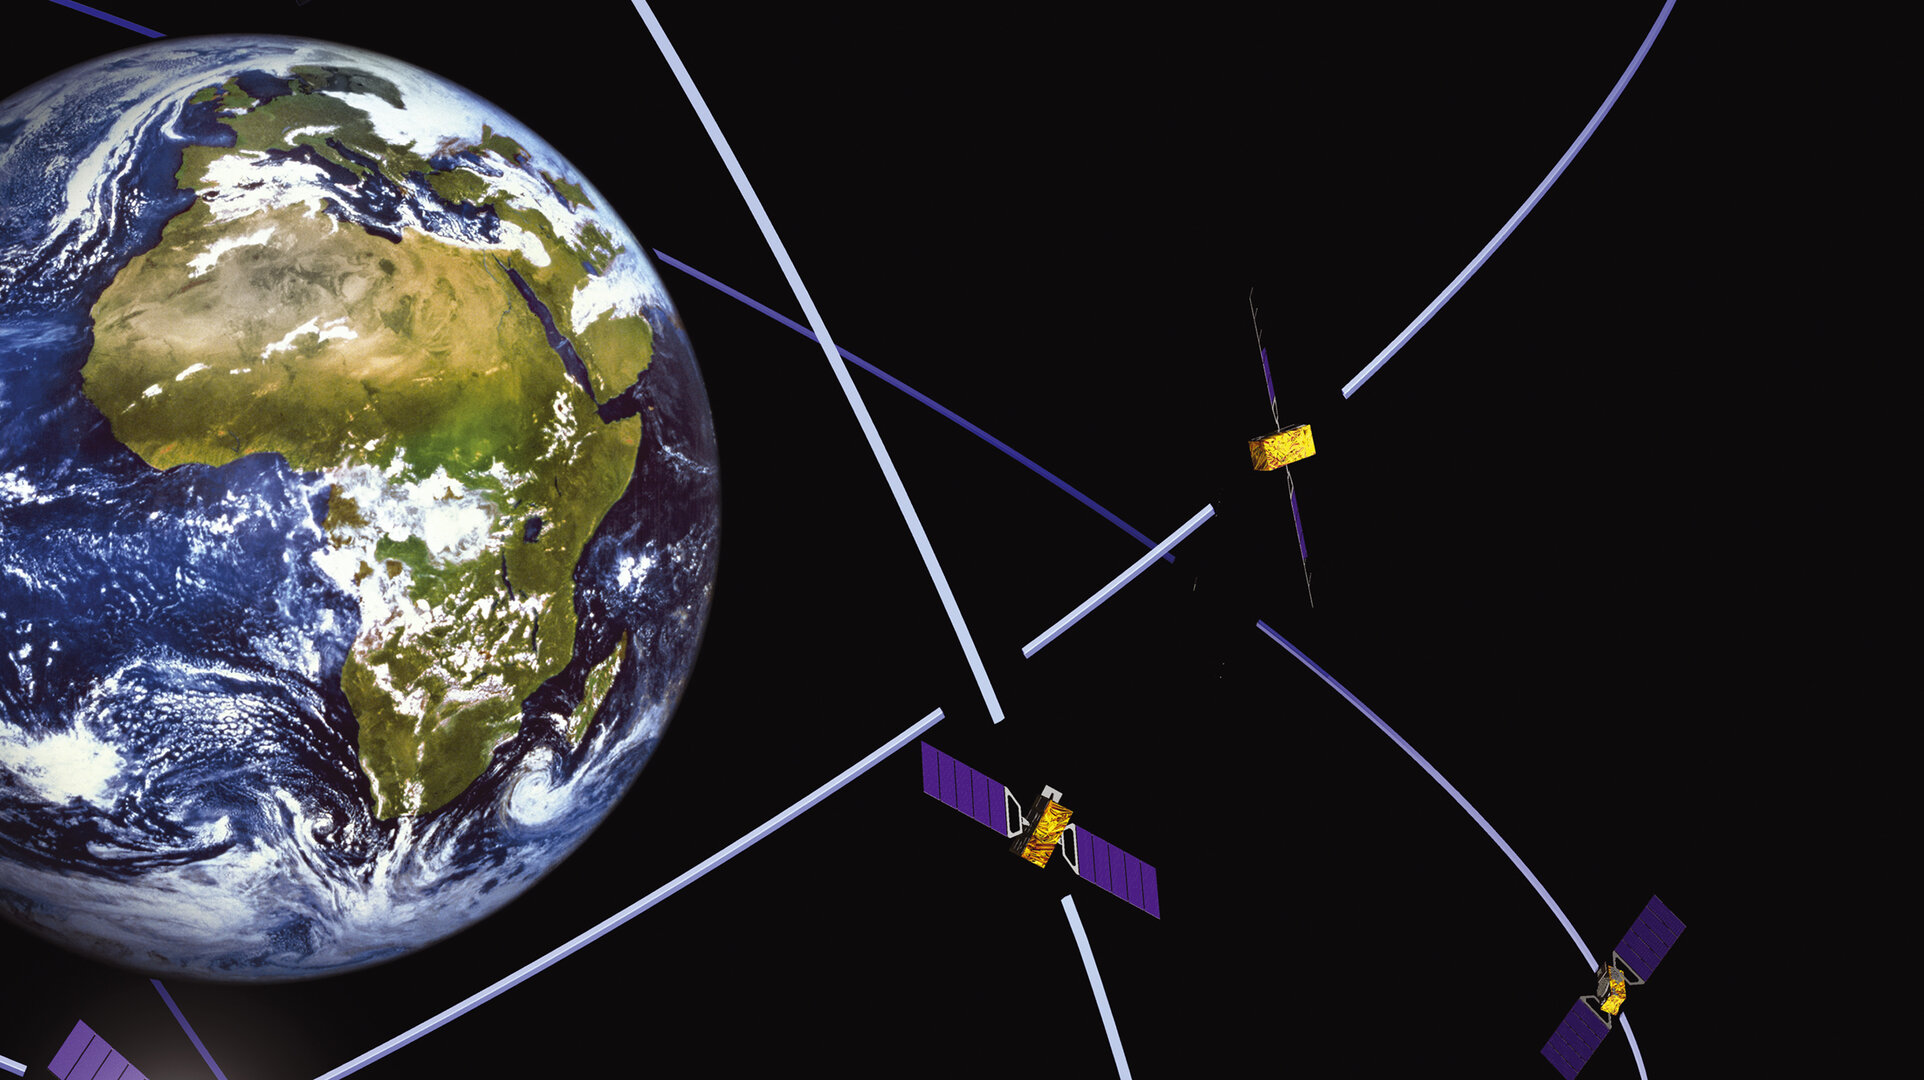 Galileo, Europe's global navigation system